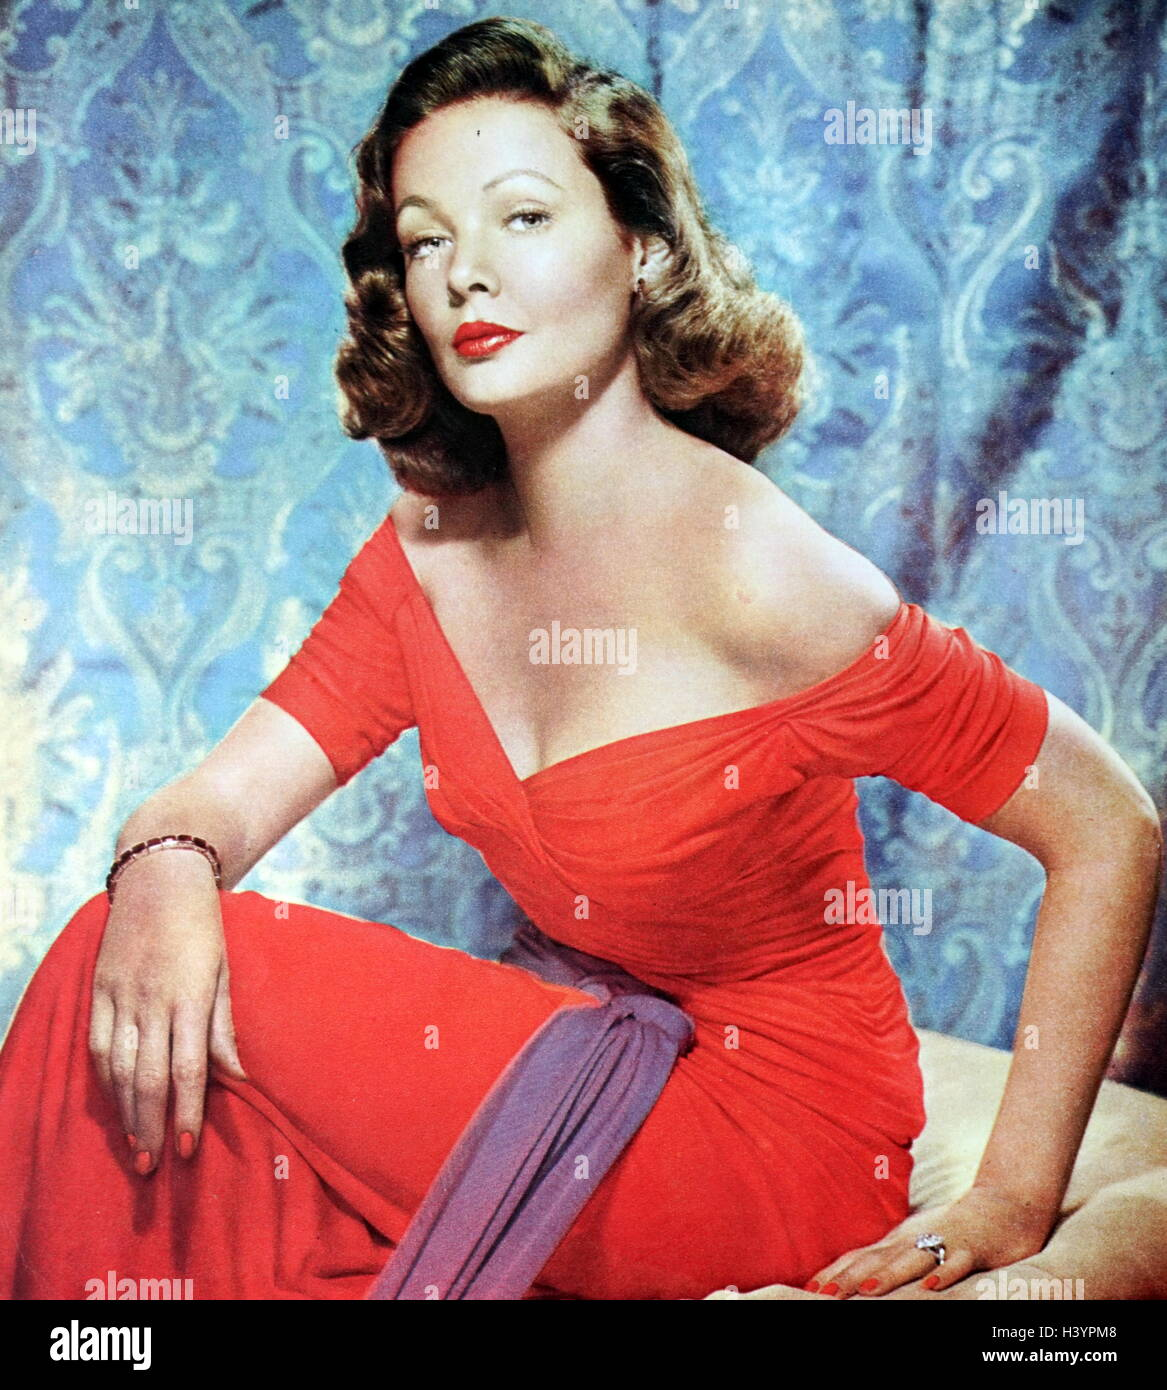 Photograph of Gene Tierney (1920-1991) an American film and stage actress. Dated 20th Century - Stock Image